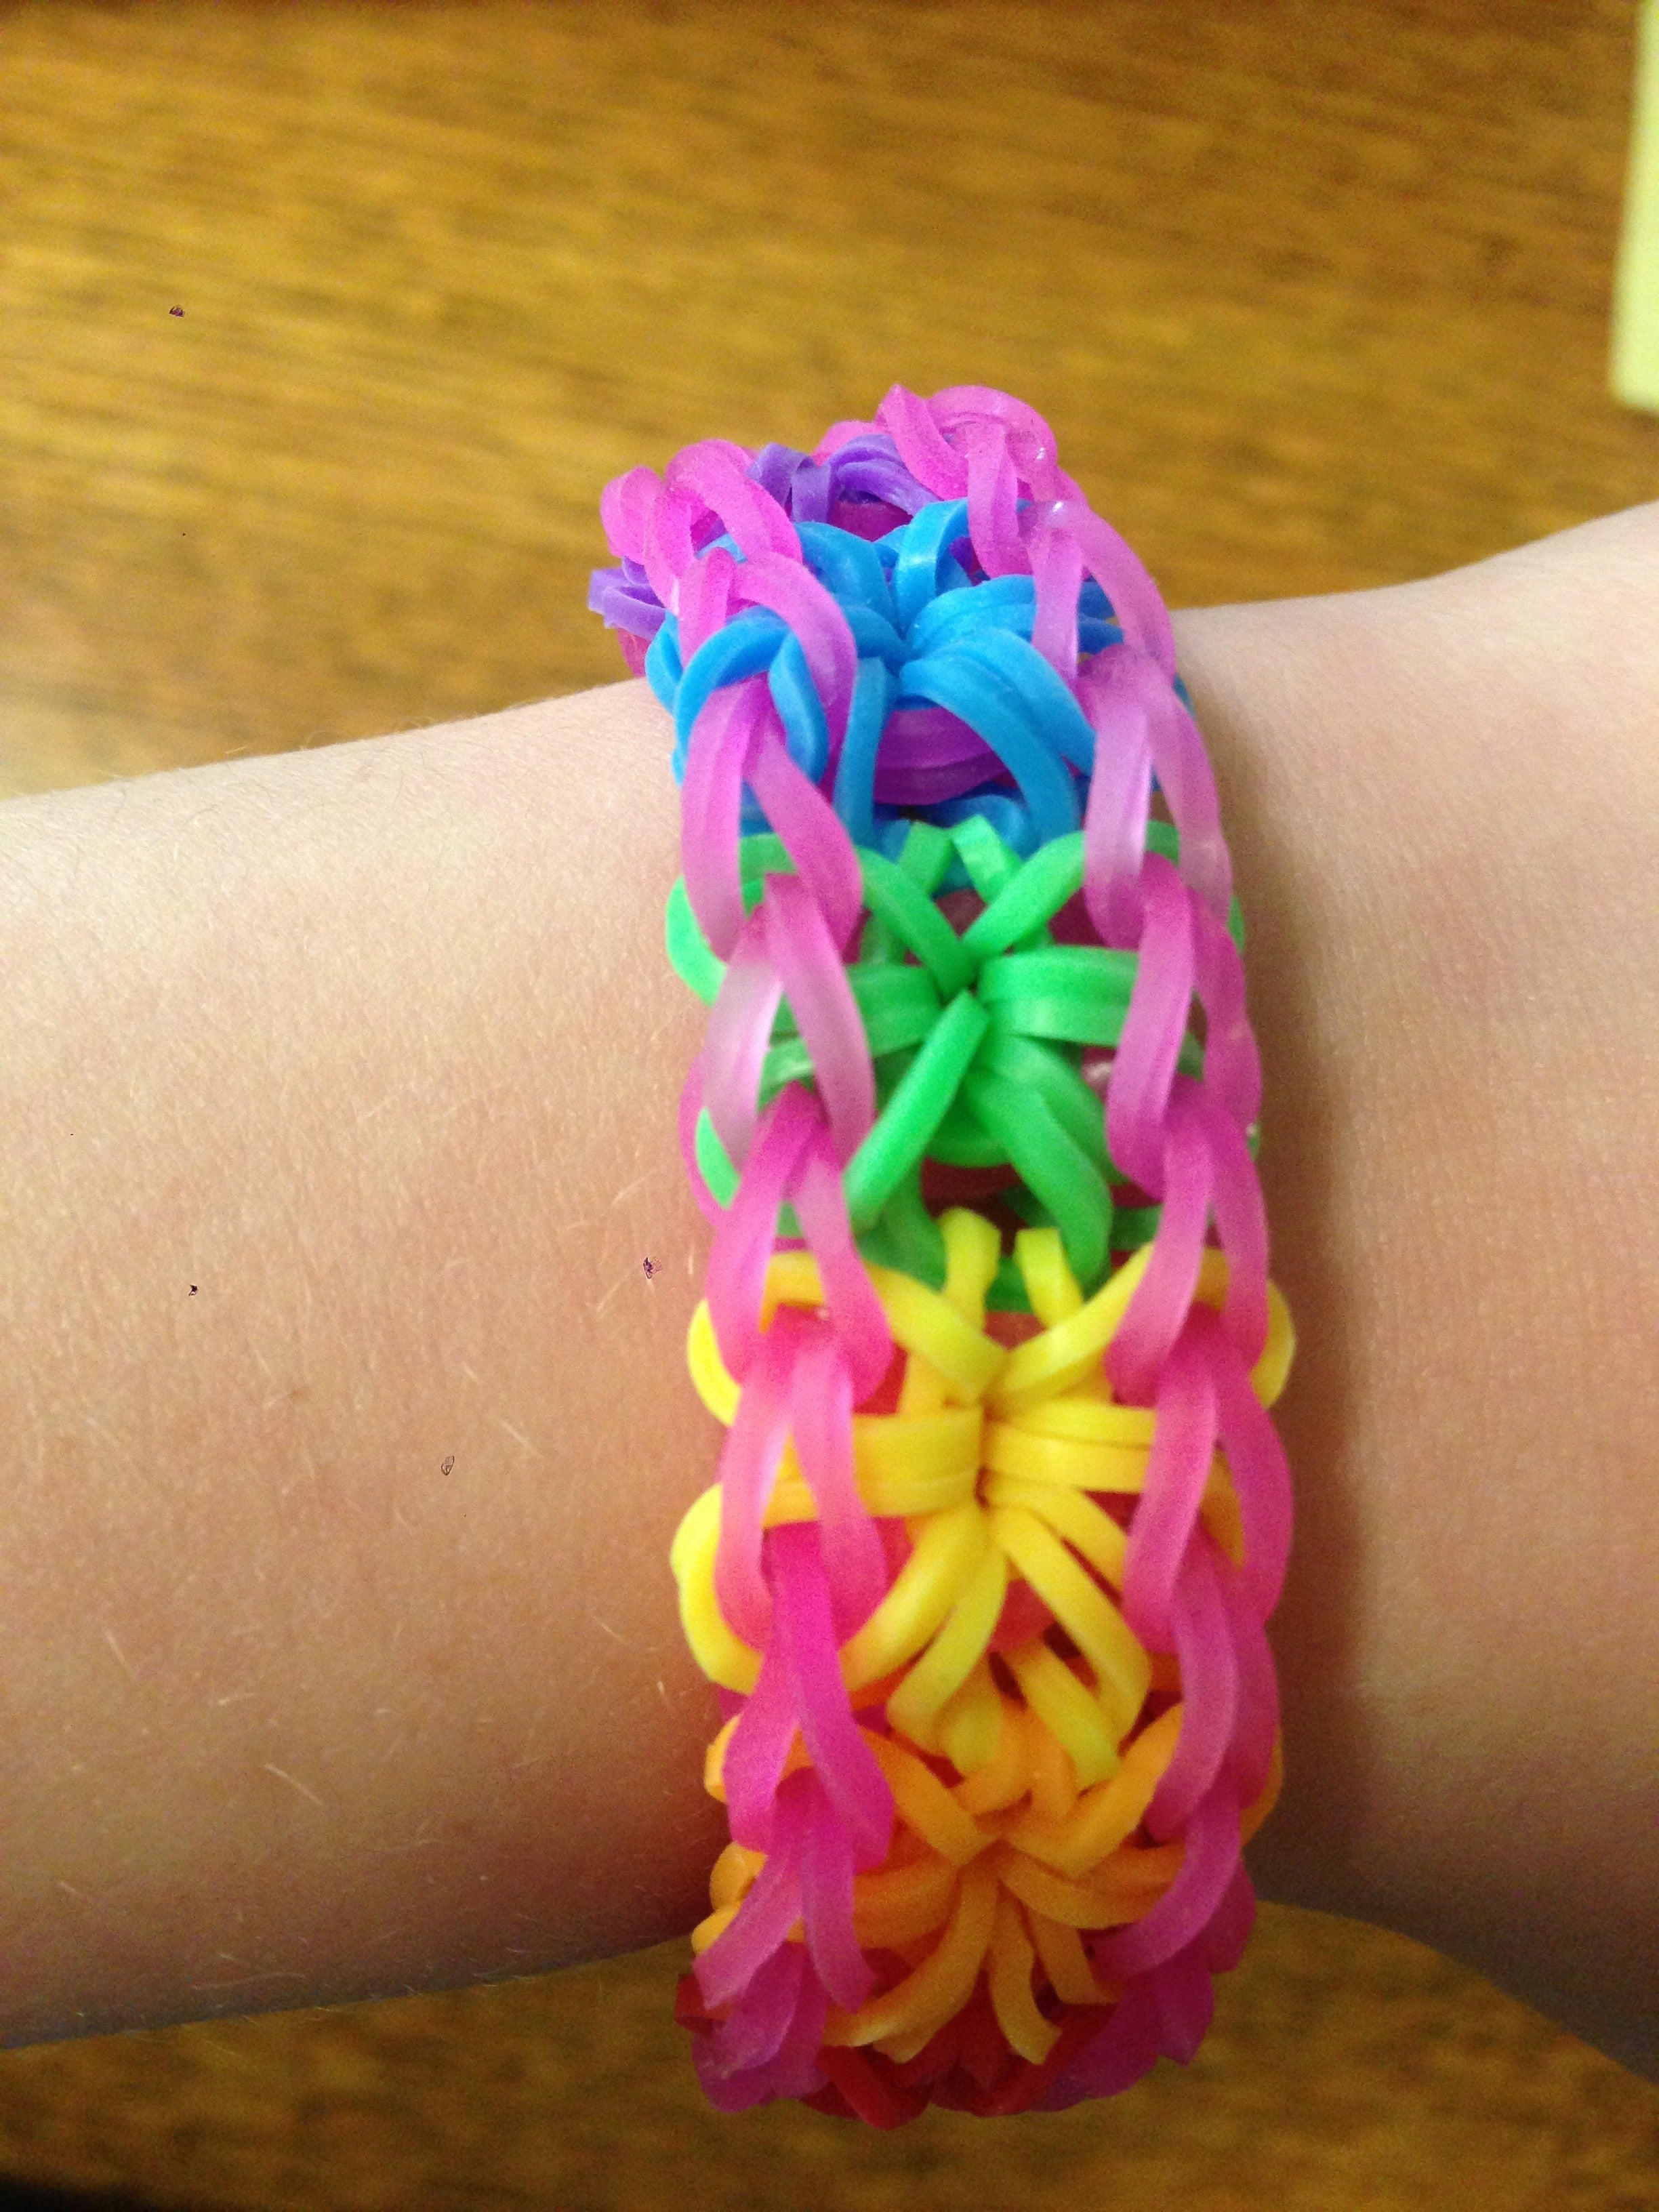 How To Make A Rainbow Loom Starburst Bracelet 18 Steps With Pictures Instructables